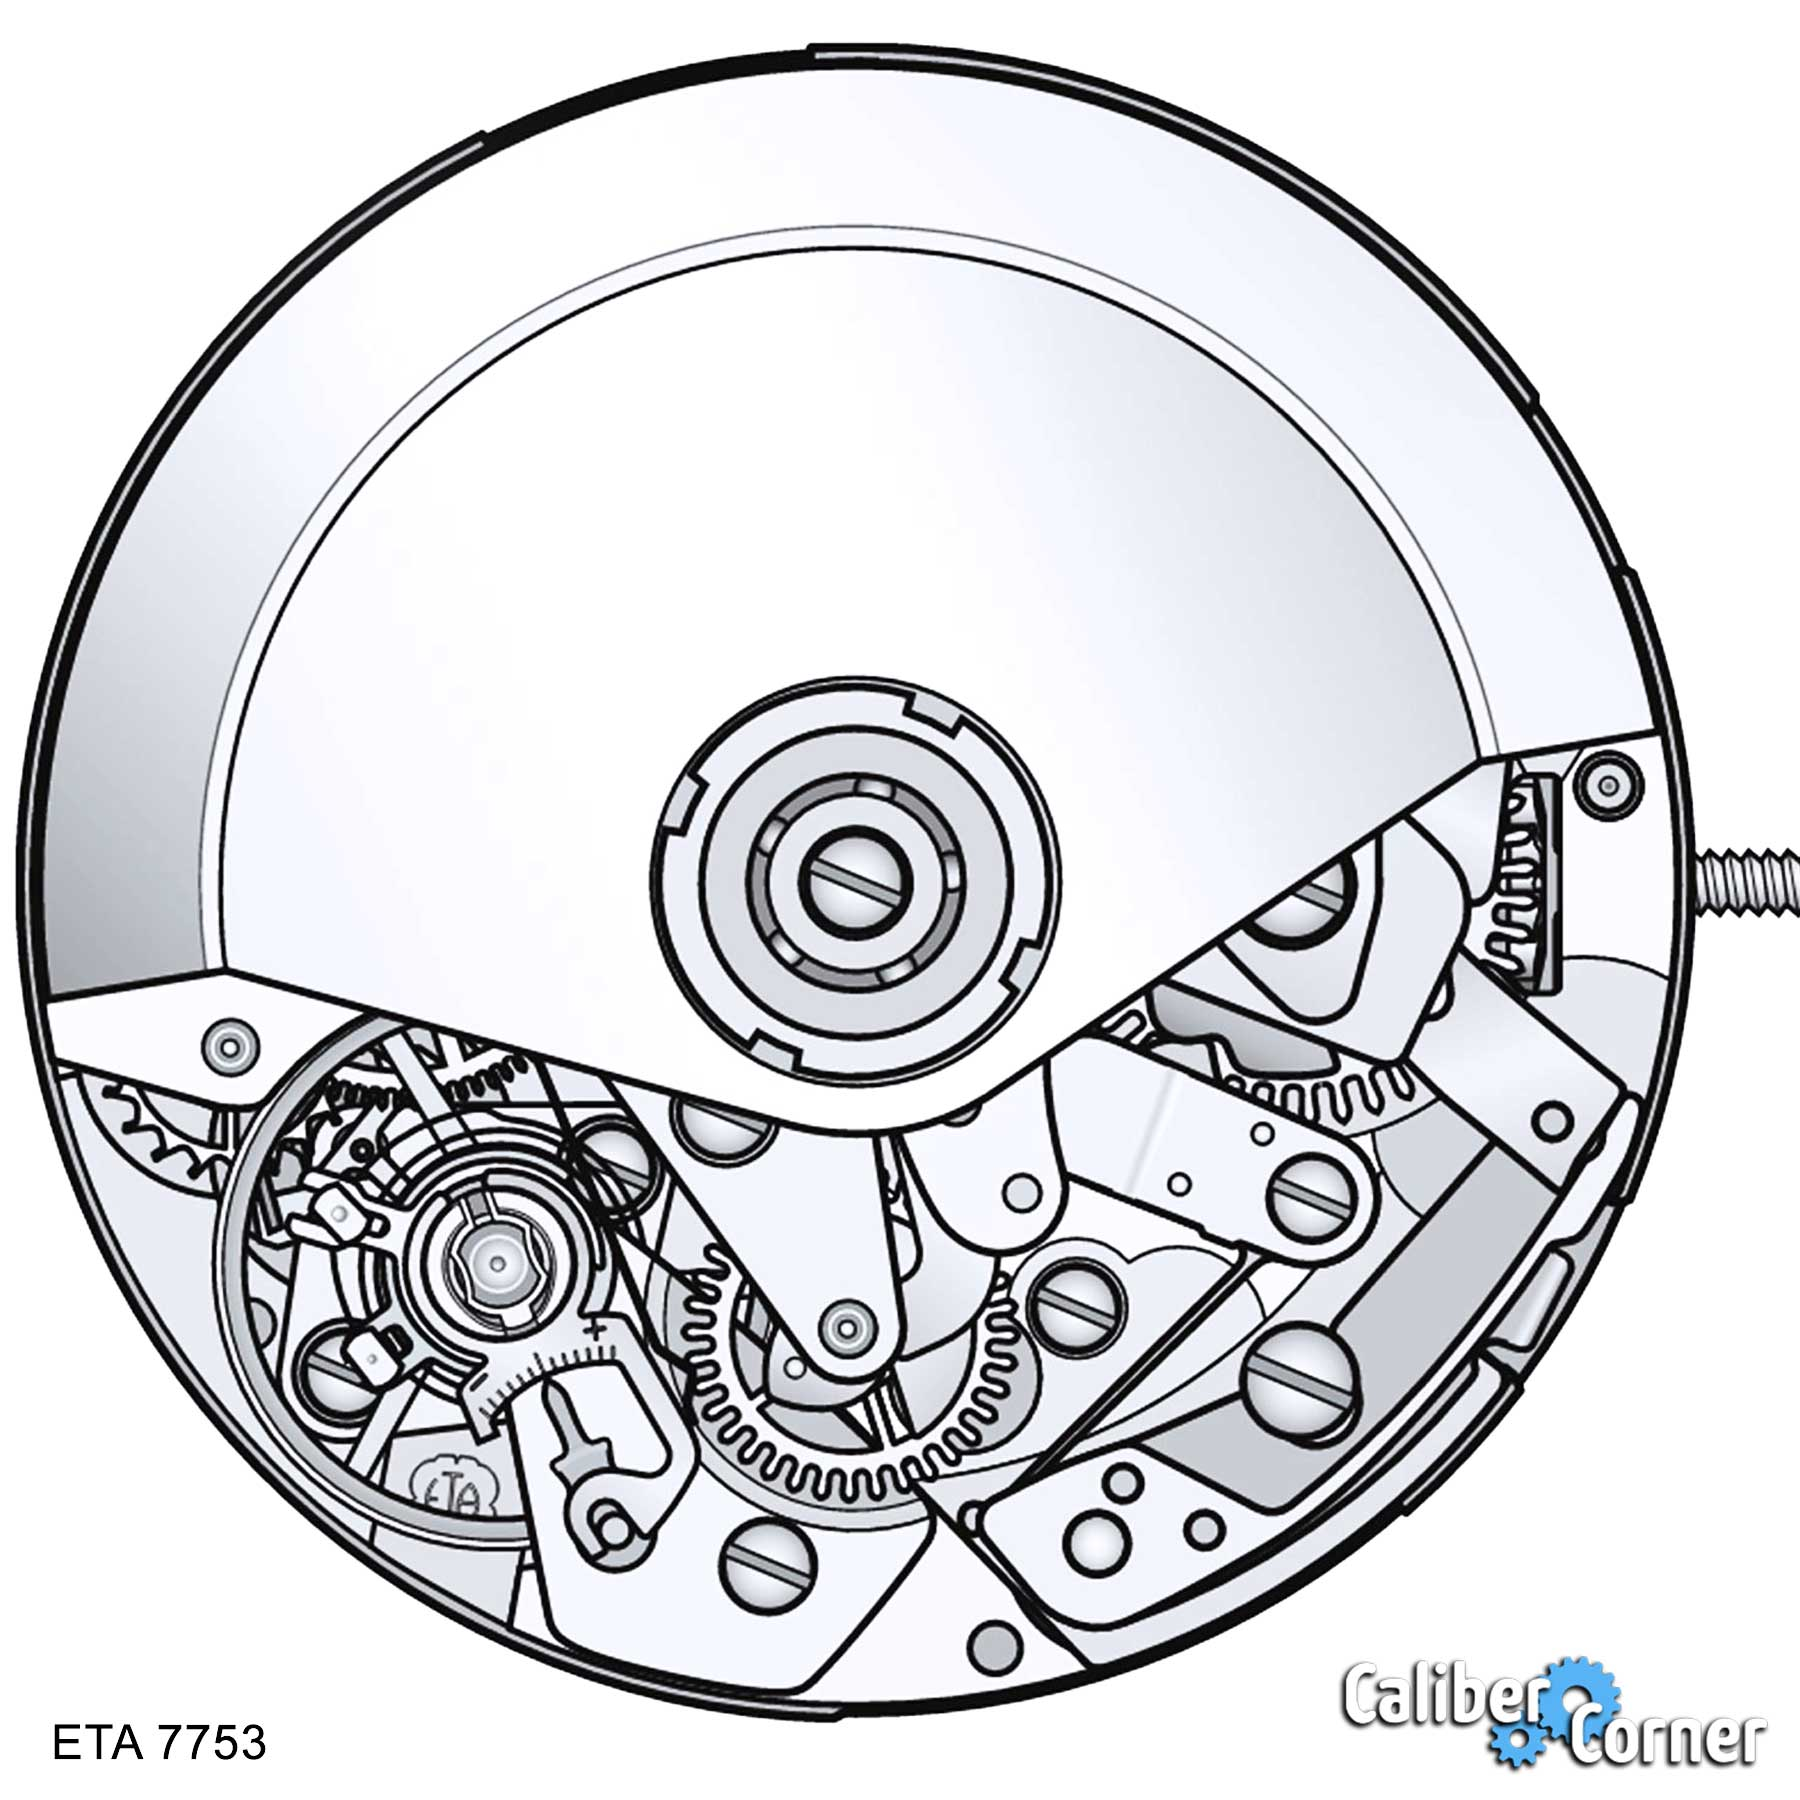 Eta Valjoux Caliber 7753 Drawing